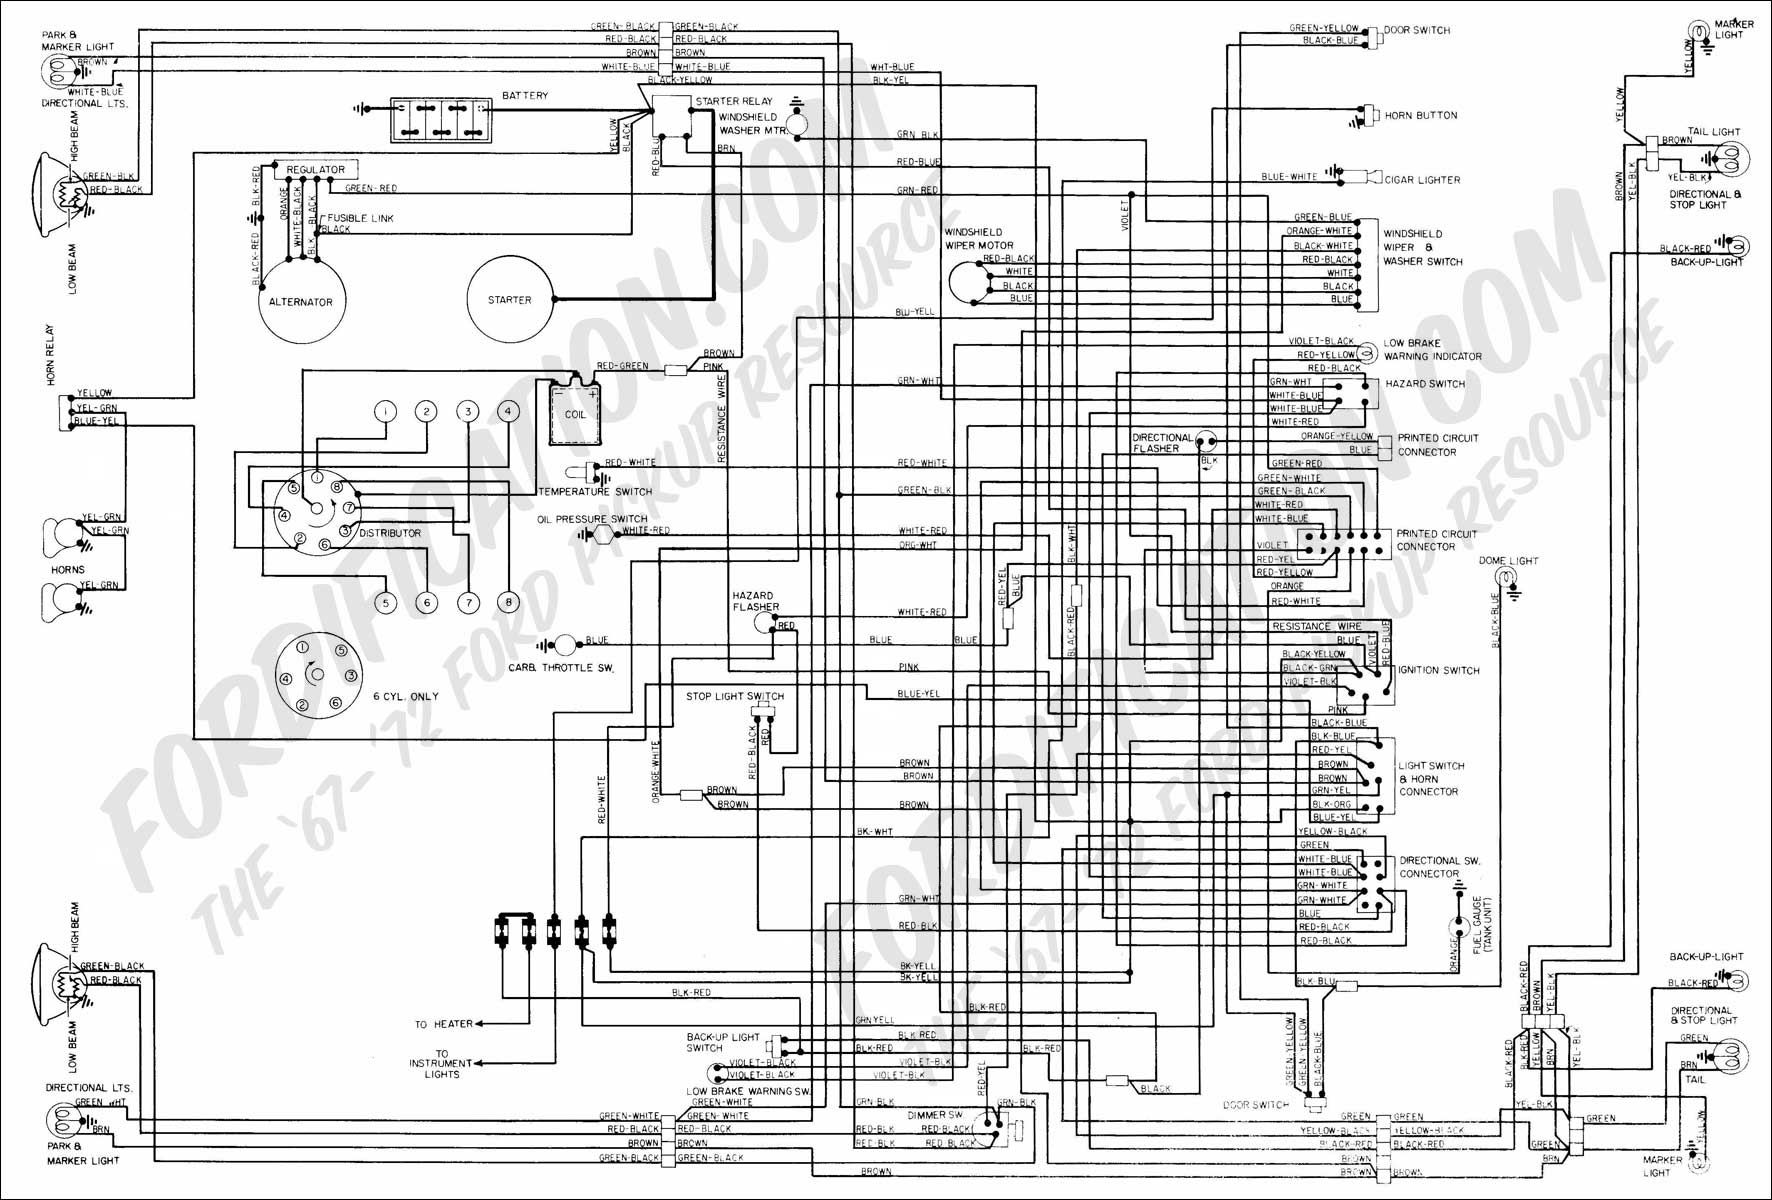 hight resolution of 2006 ford truck wiring diagram another wiring diagram 2006 ford truck wiring diagram wiring diagram expert